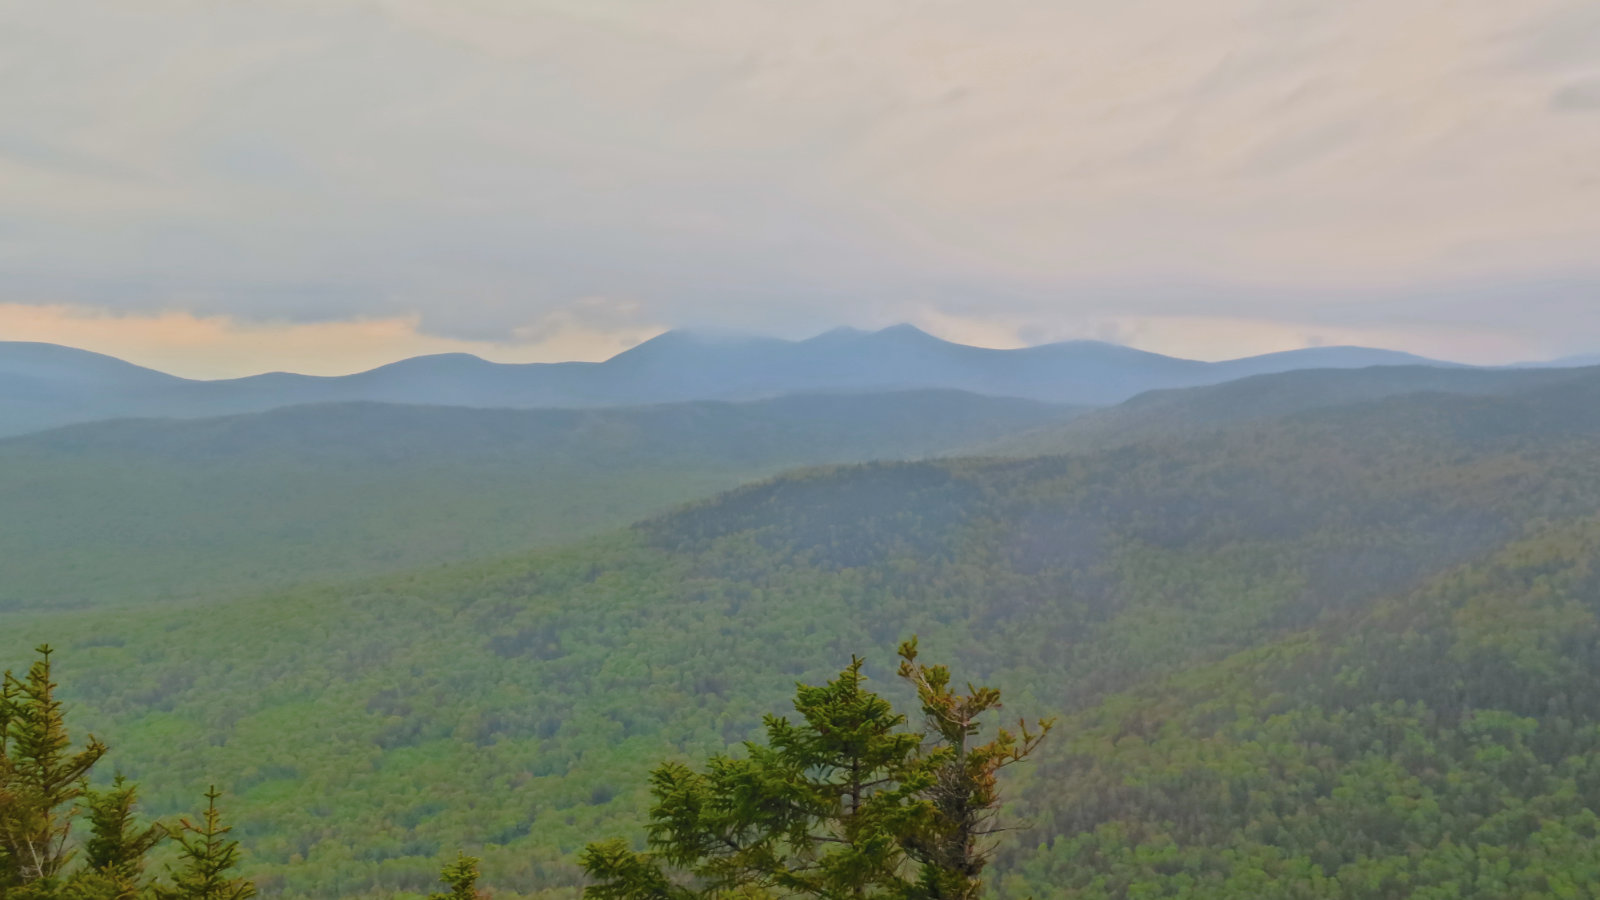 A terribly attenuated view of Mt Tripyramid, White Mountain National Forest, New Hampshire.